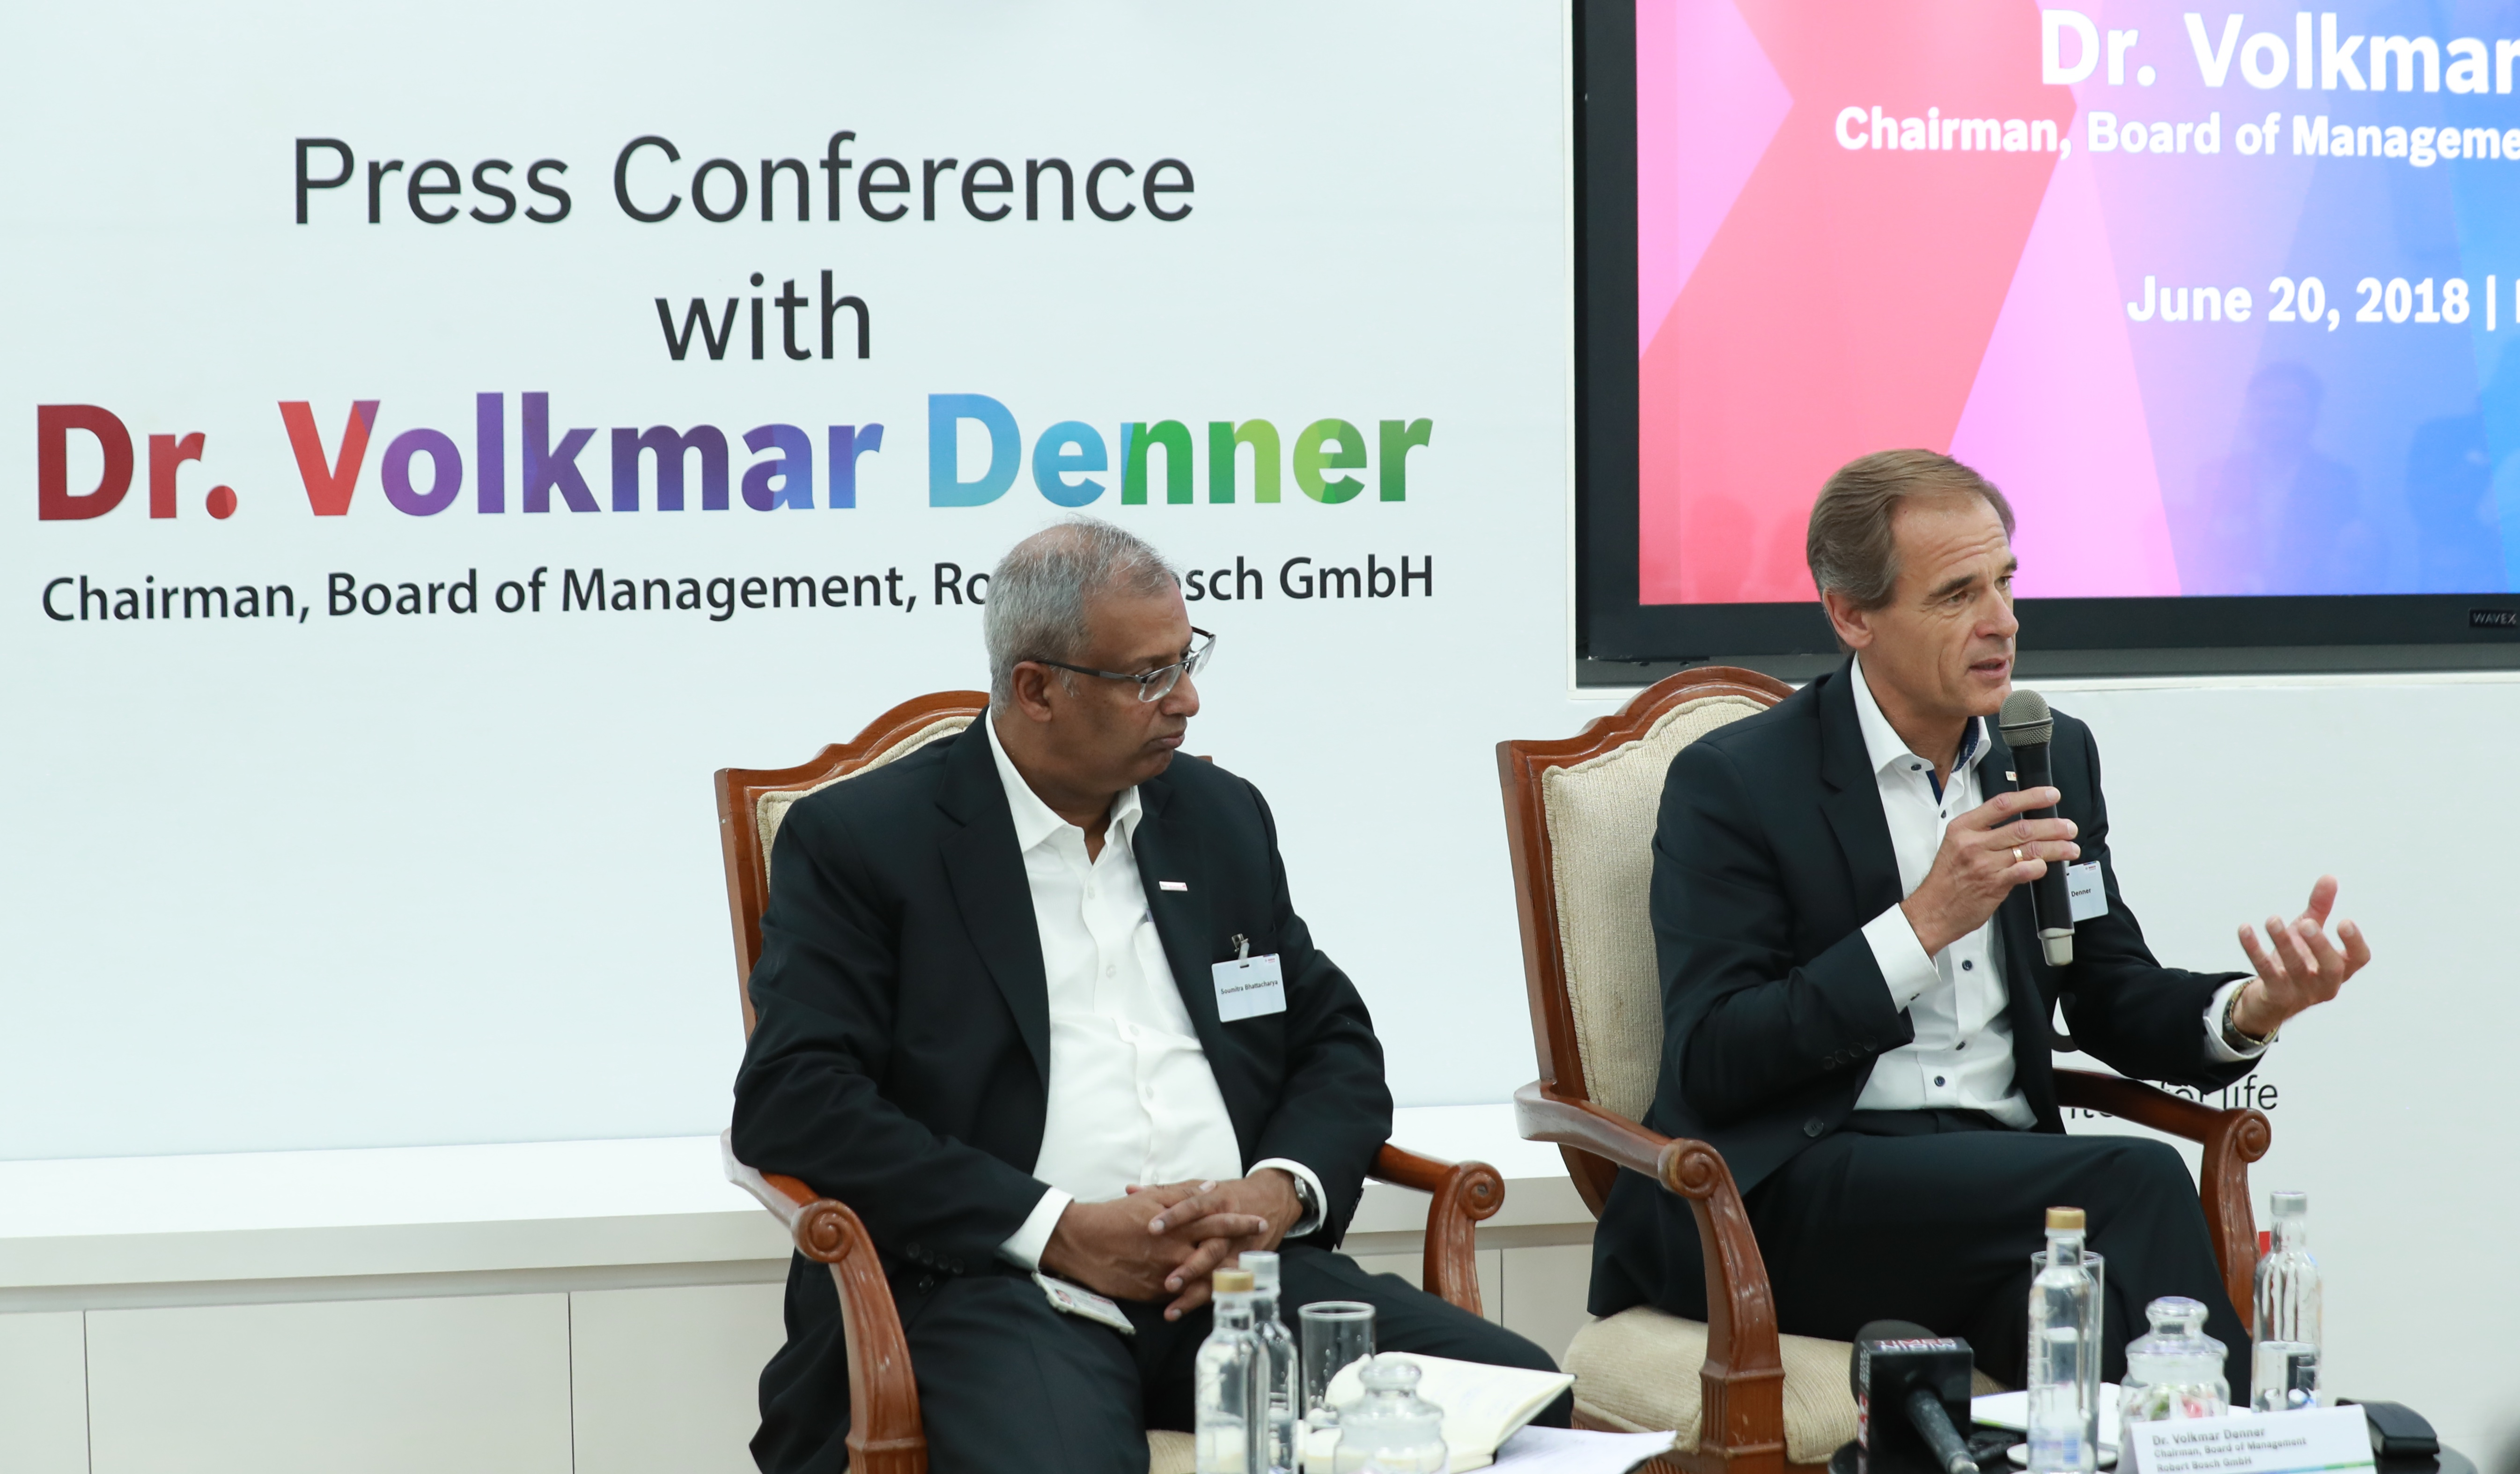 Bosch CEO Dr. Volkmar Denner and Mr. Soumitra Bhattacharya, president of Bosch India